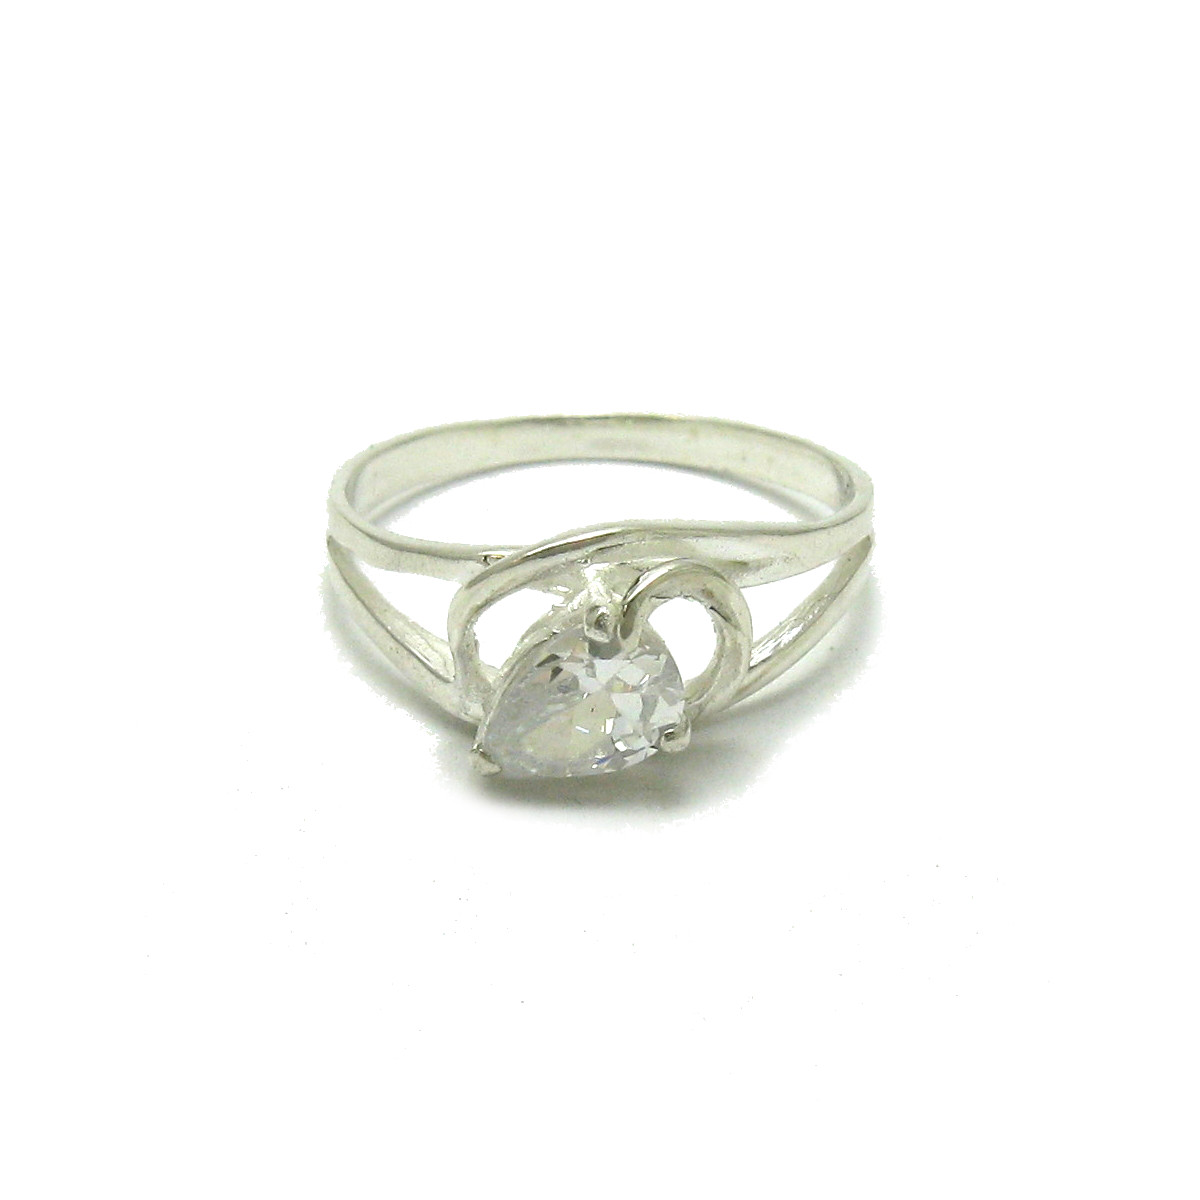 Silver ring - R001685